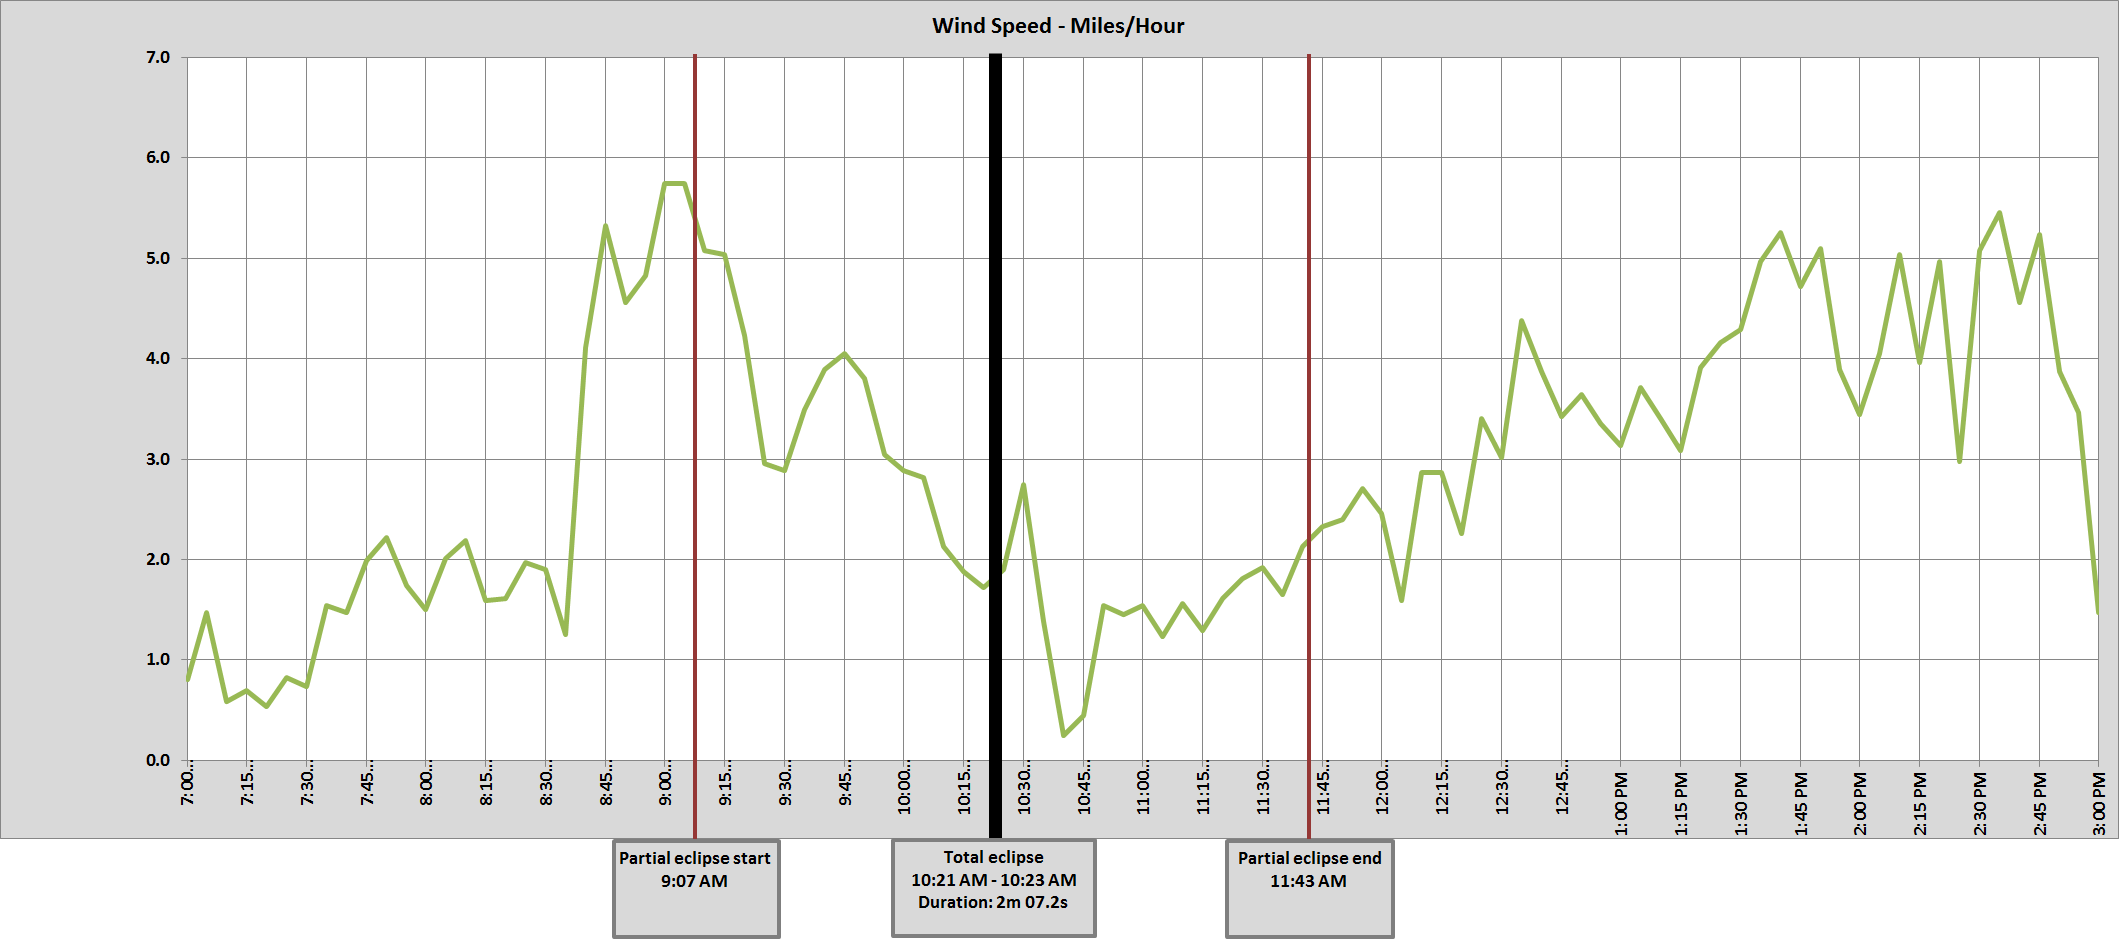 Graph of John Day, OR wind speed